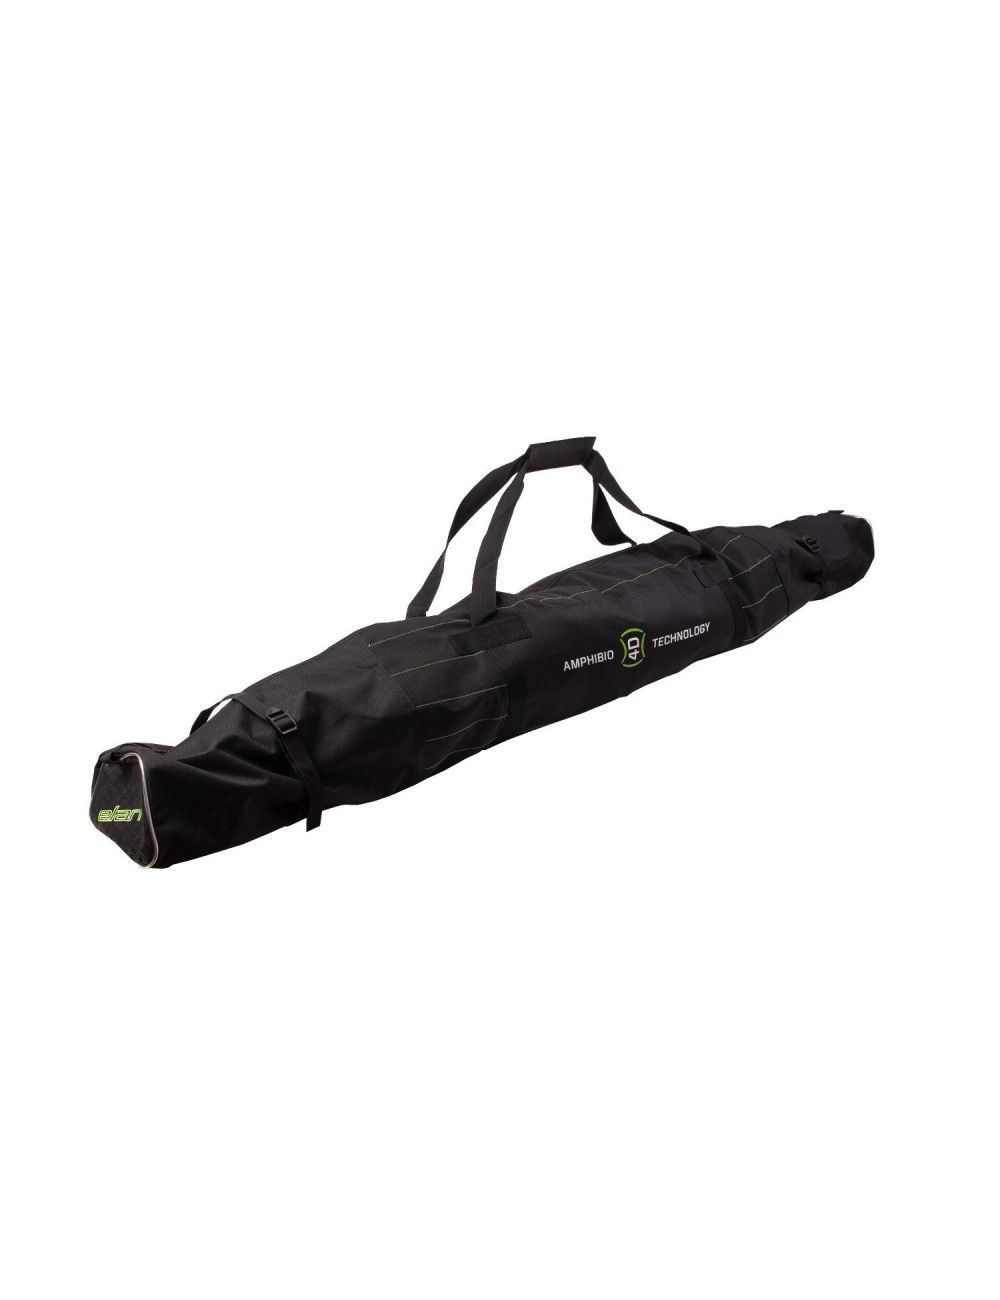 Pokrowiec na narty Elan Single SKI BAG do 171 cm